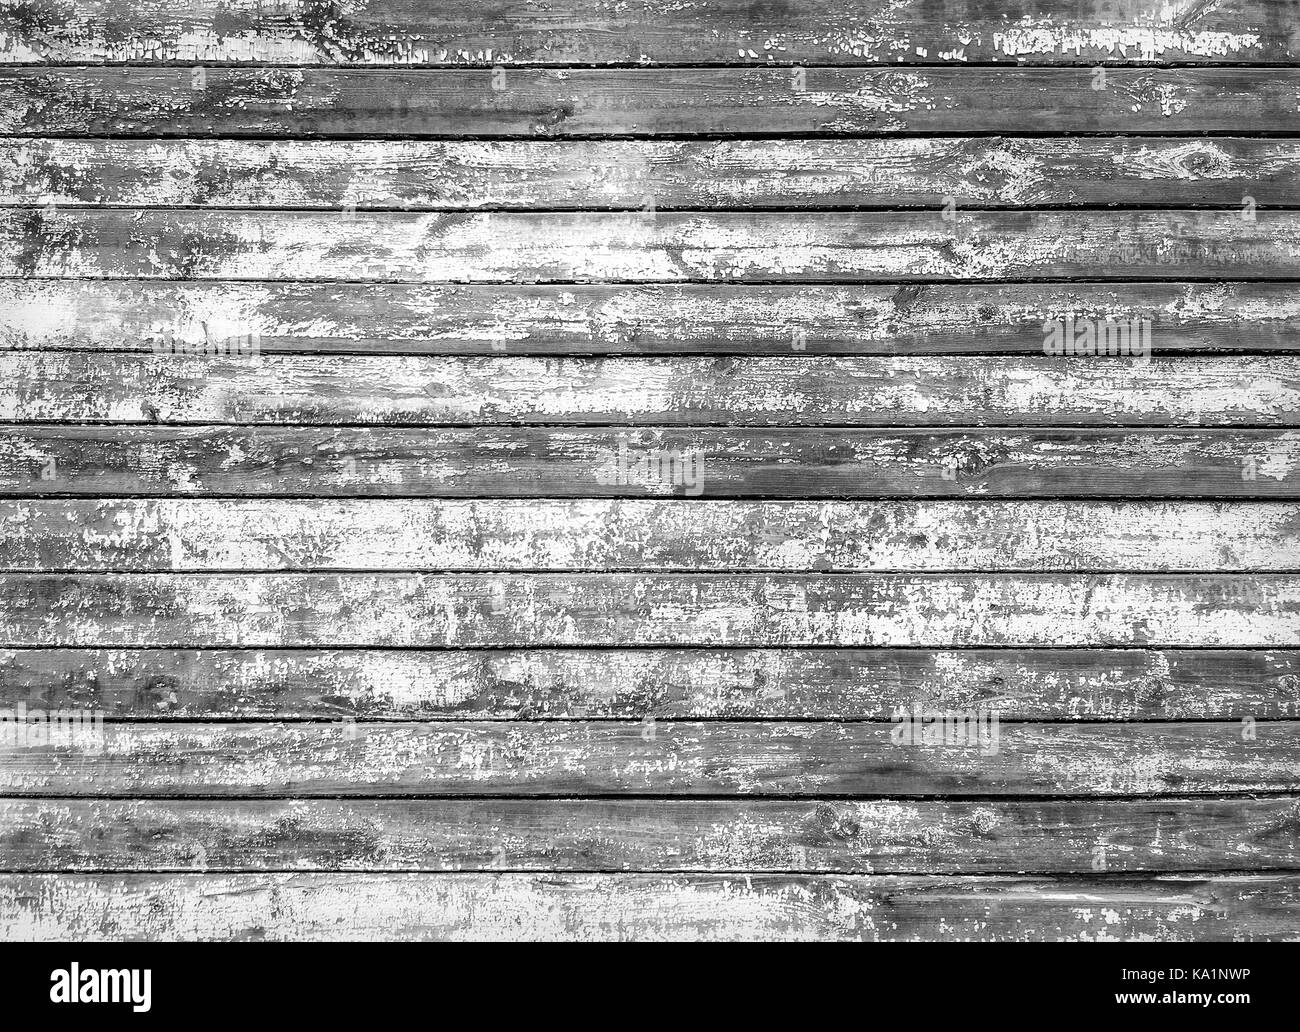 Wooden plank texture as background - Stock Image